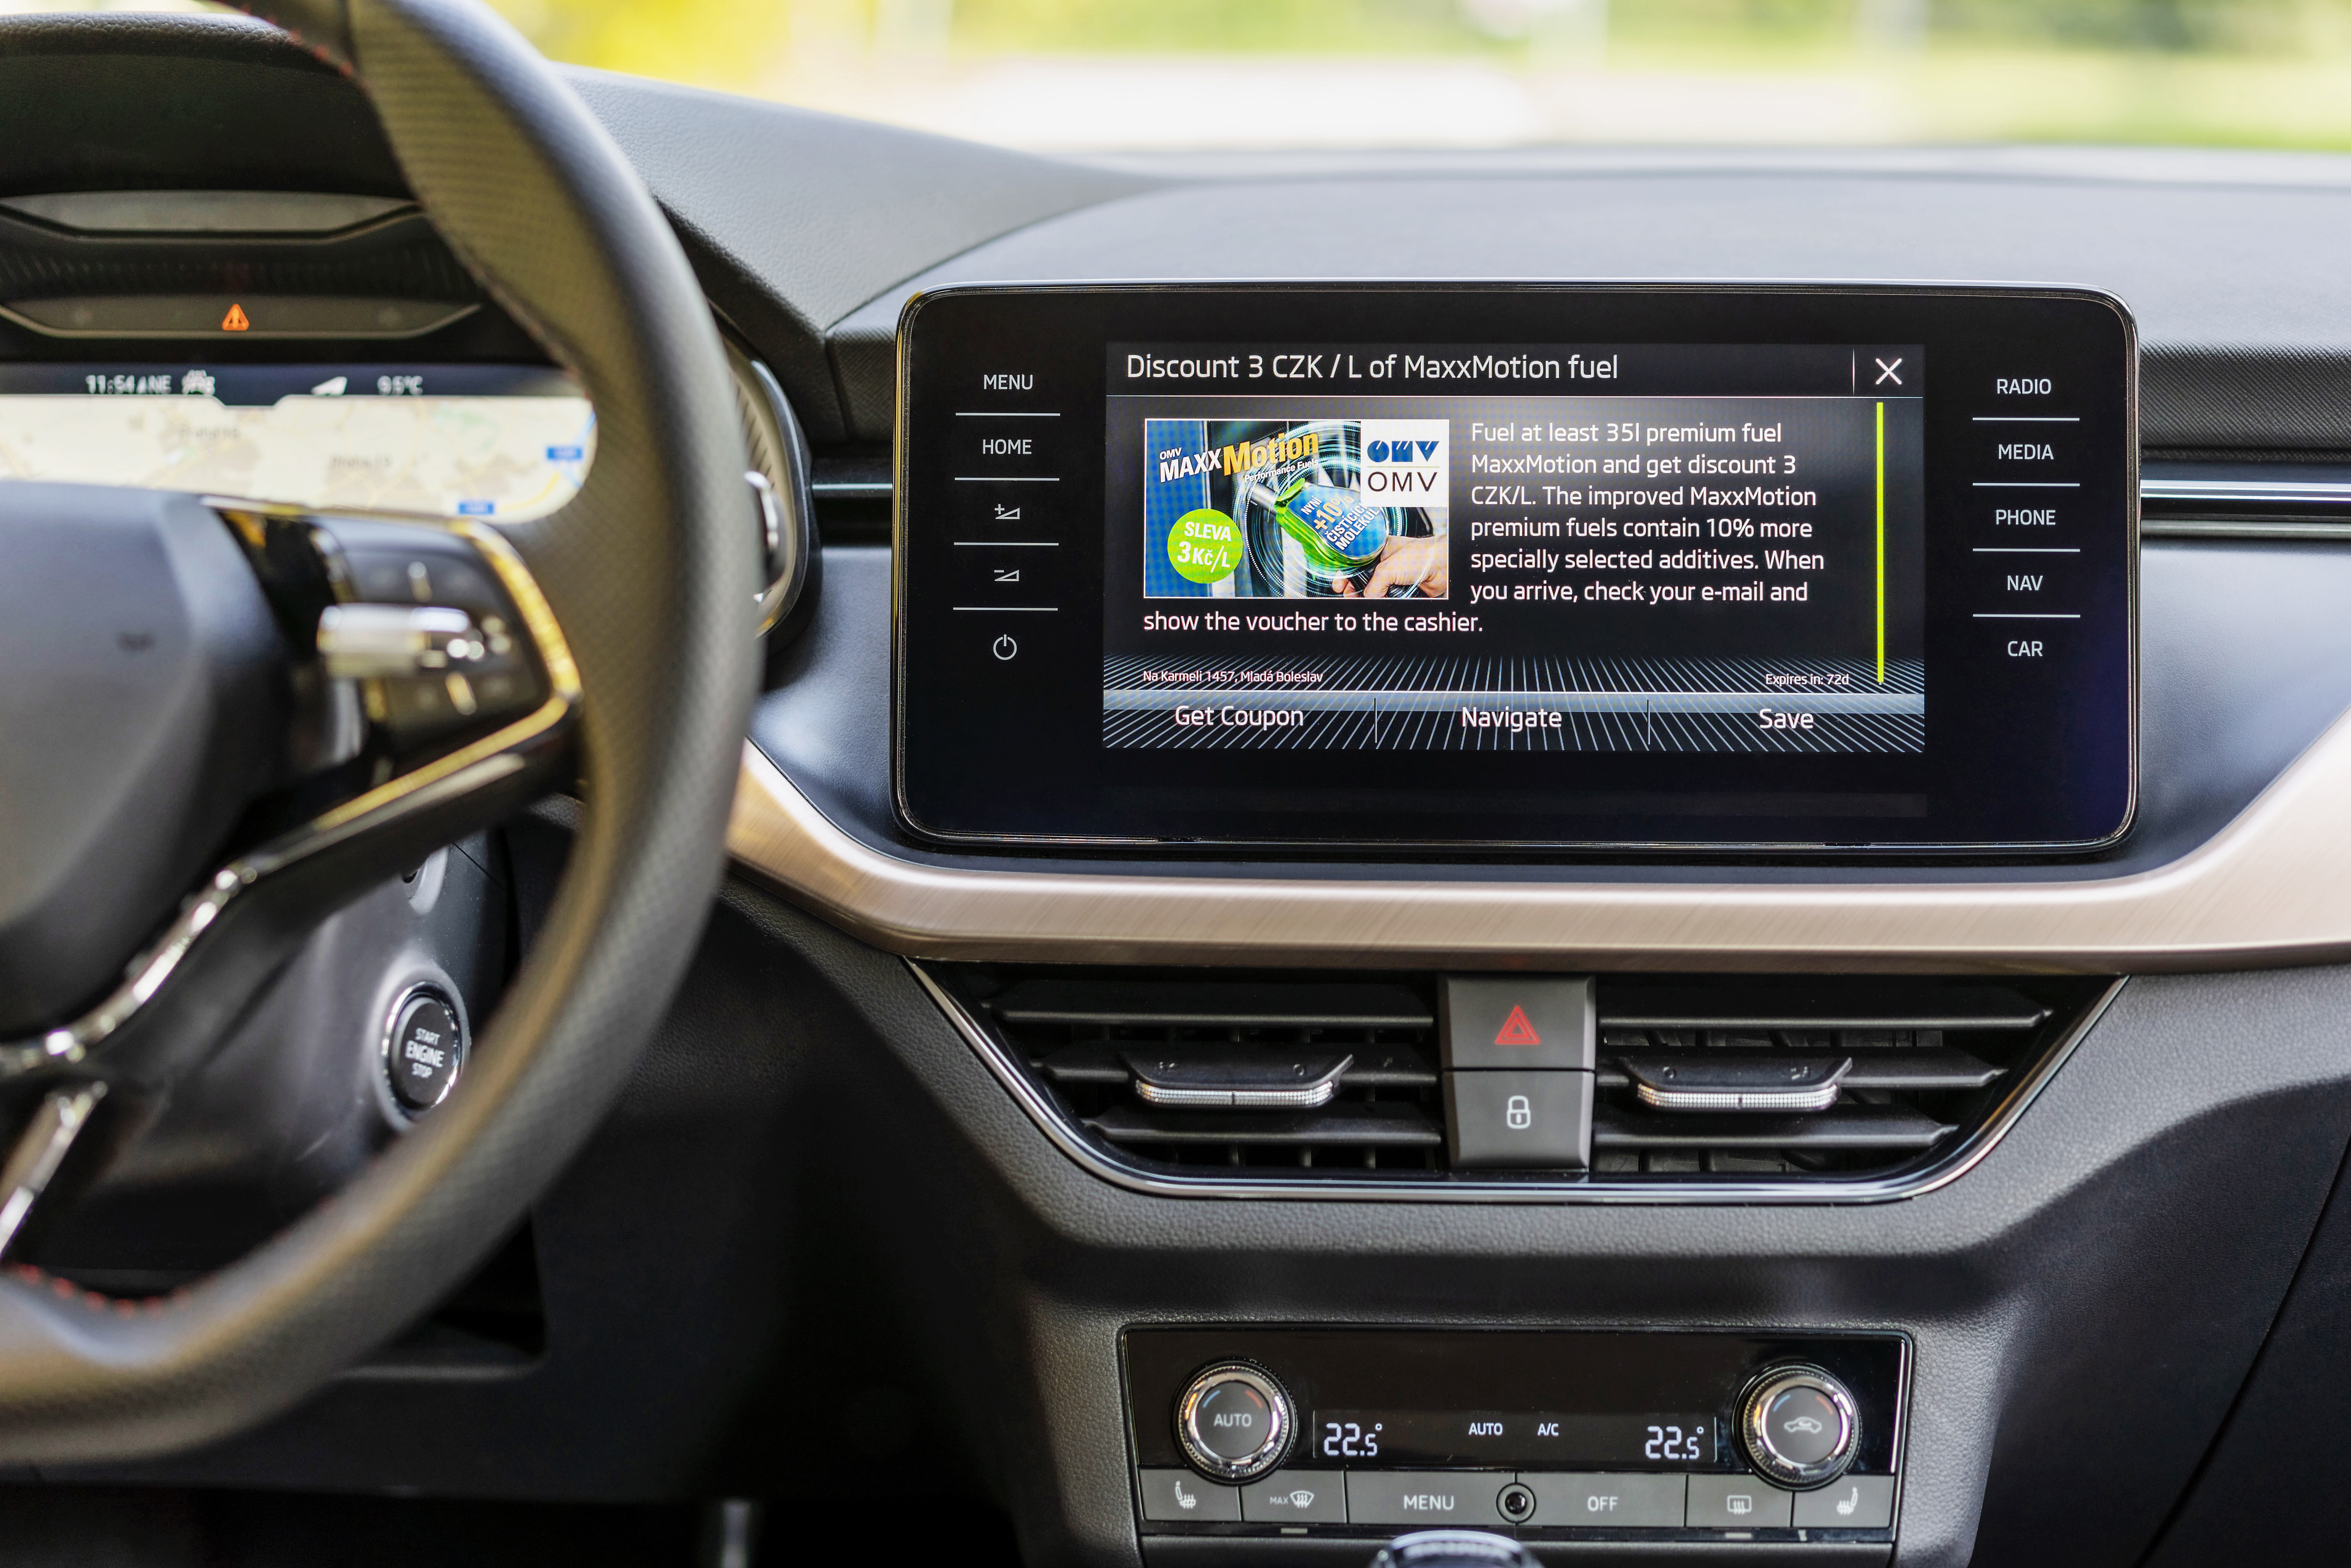 SKODA AUTO adds location-based offers to its range of connectivity services - Image 3